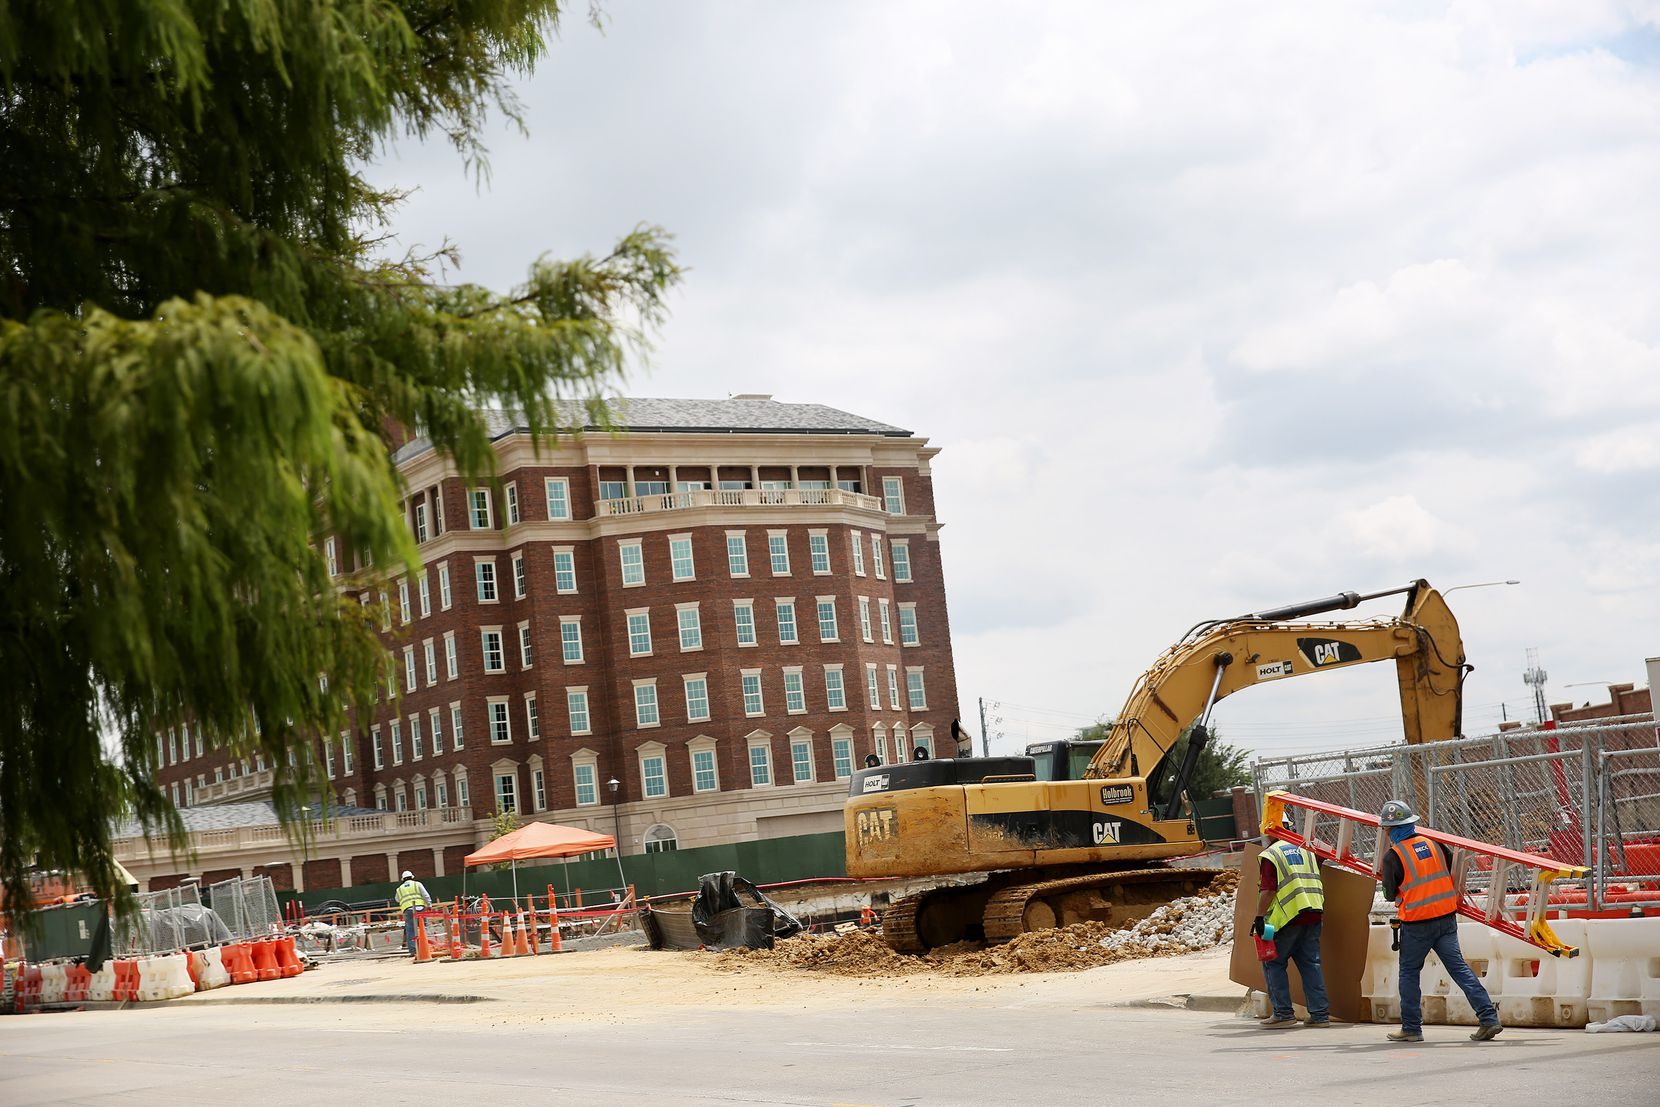 View of the Crow Holdings office building under construction at Maple Avenue and Throckmorton Street in Dallas.